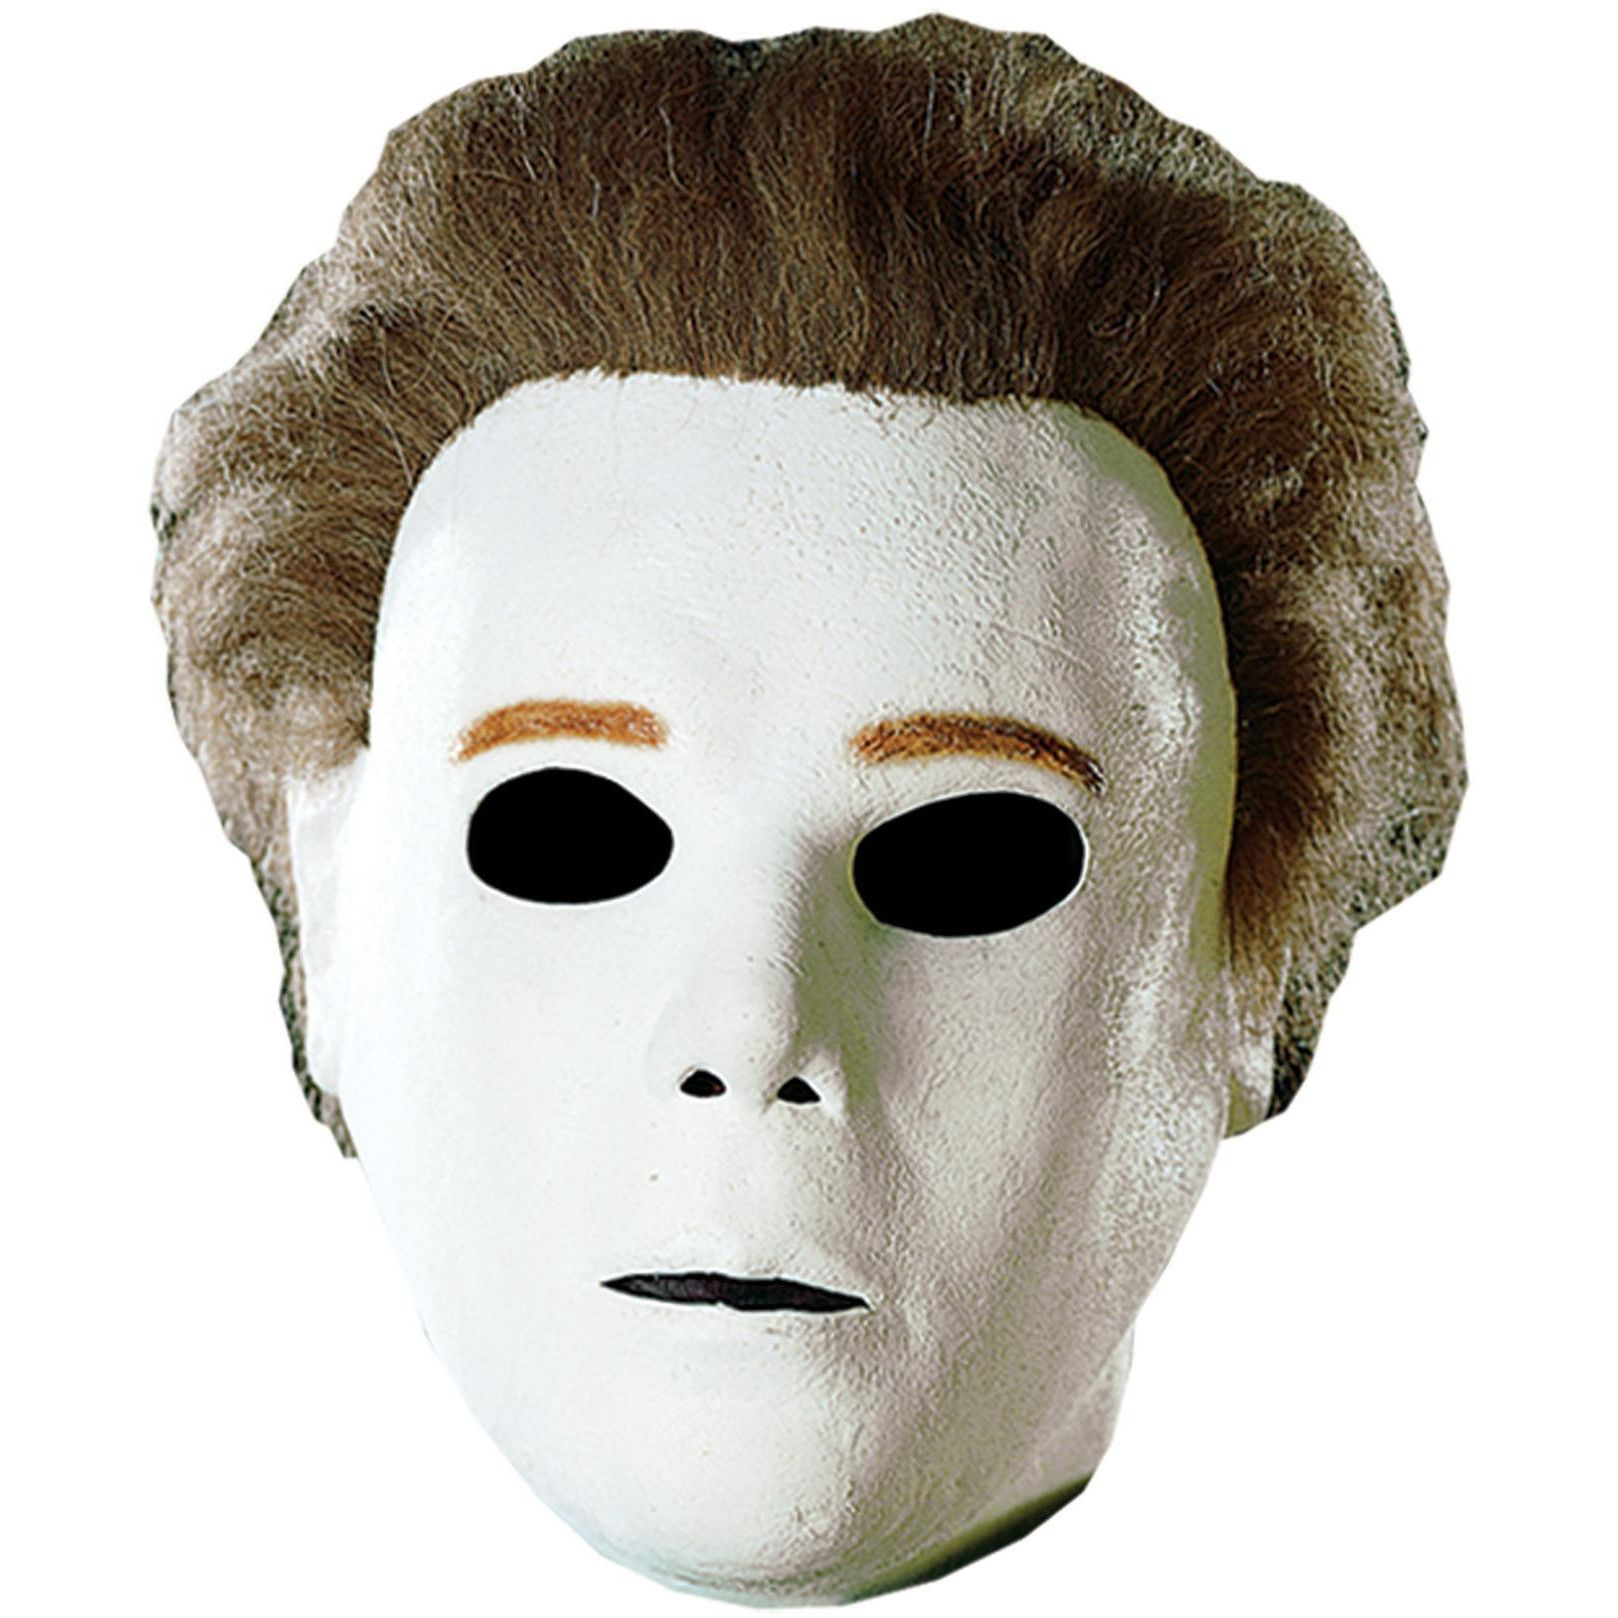 The Mask Michael myers halloween mask, The mask costume